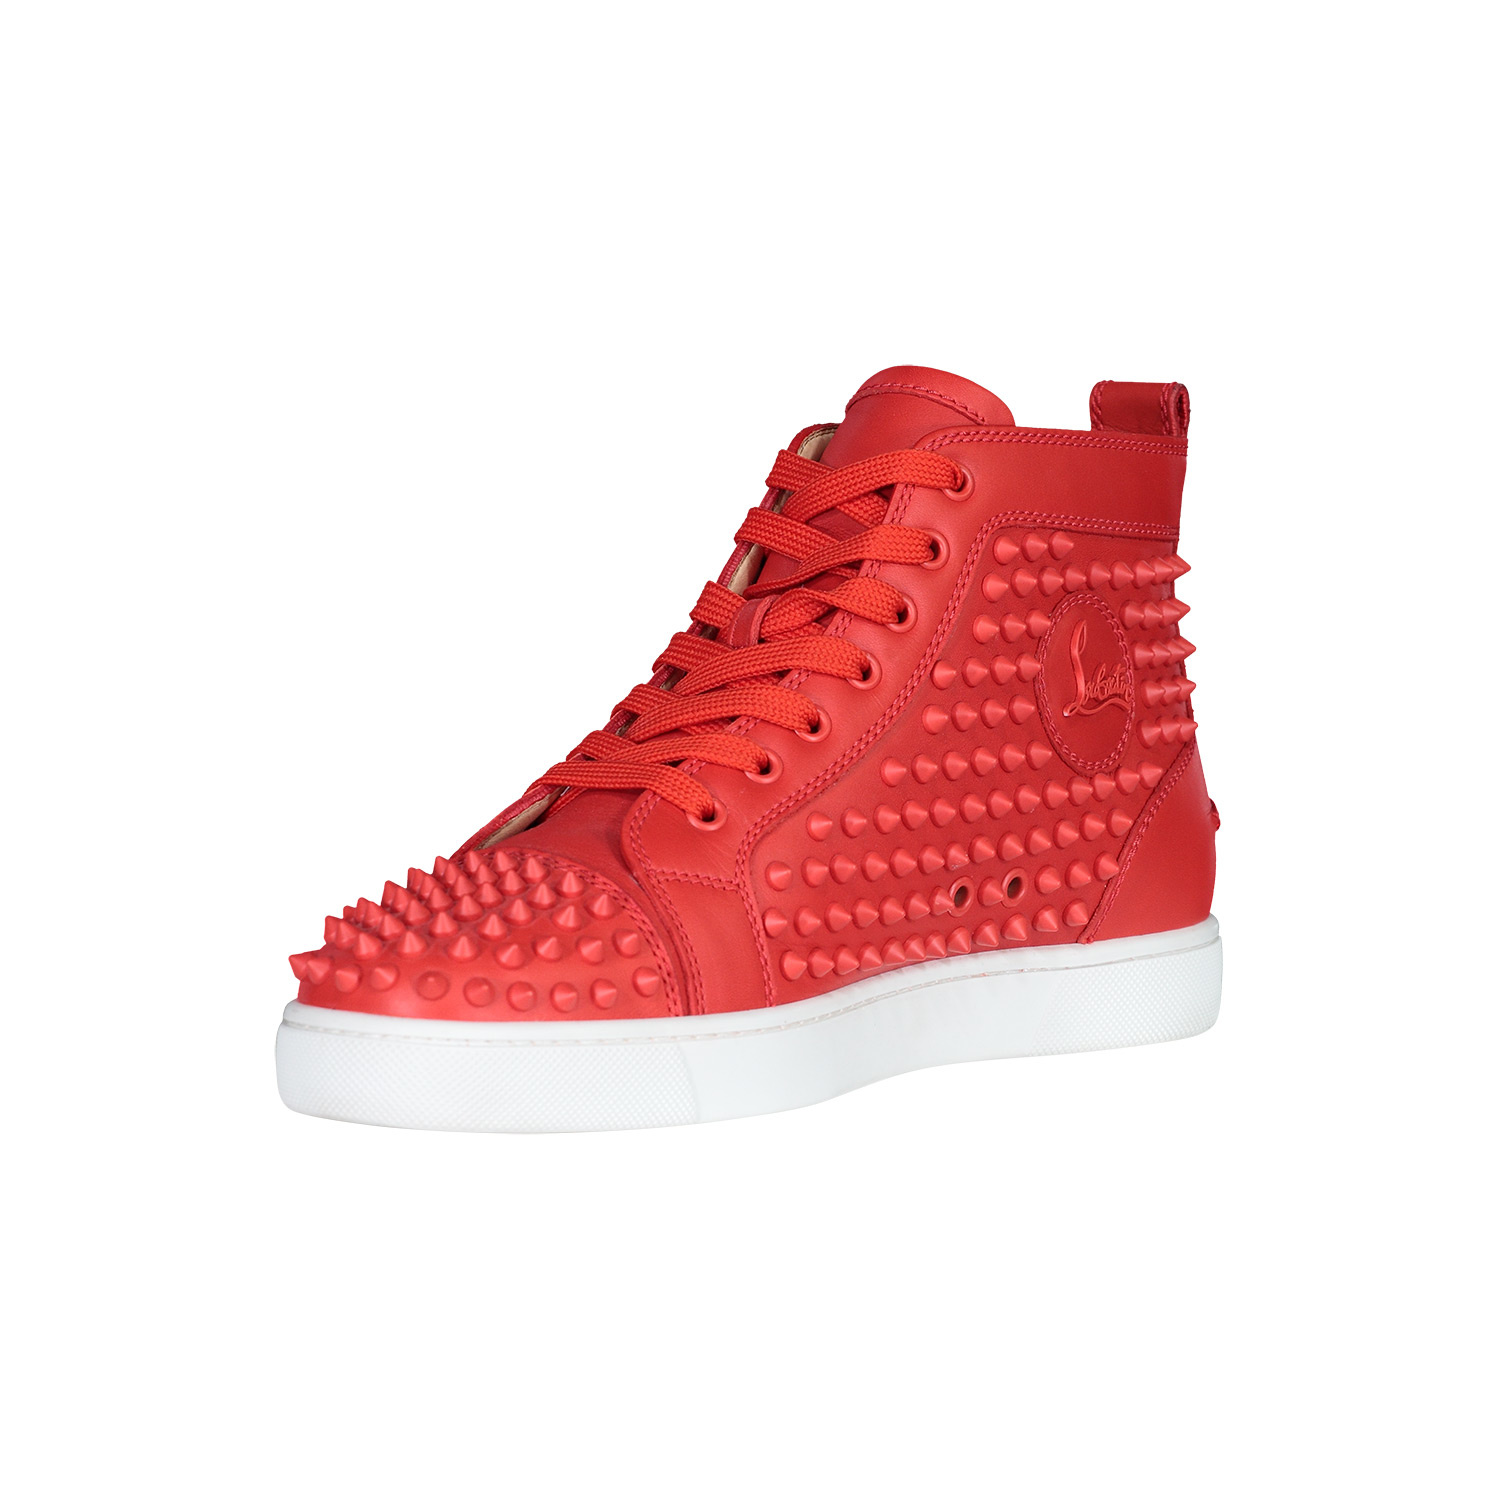 Christian Louboutin Red Spike Leather Louis Flats Sneakers